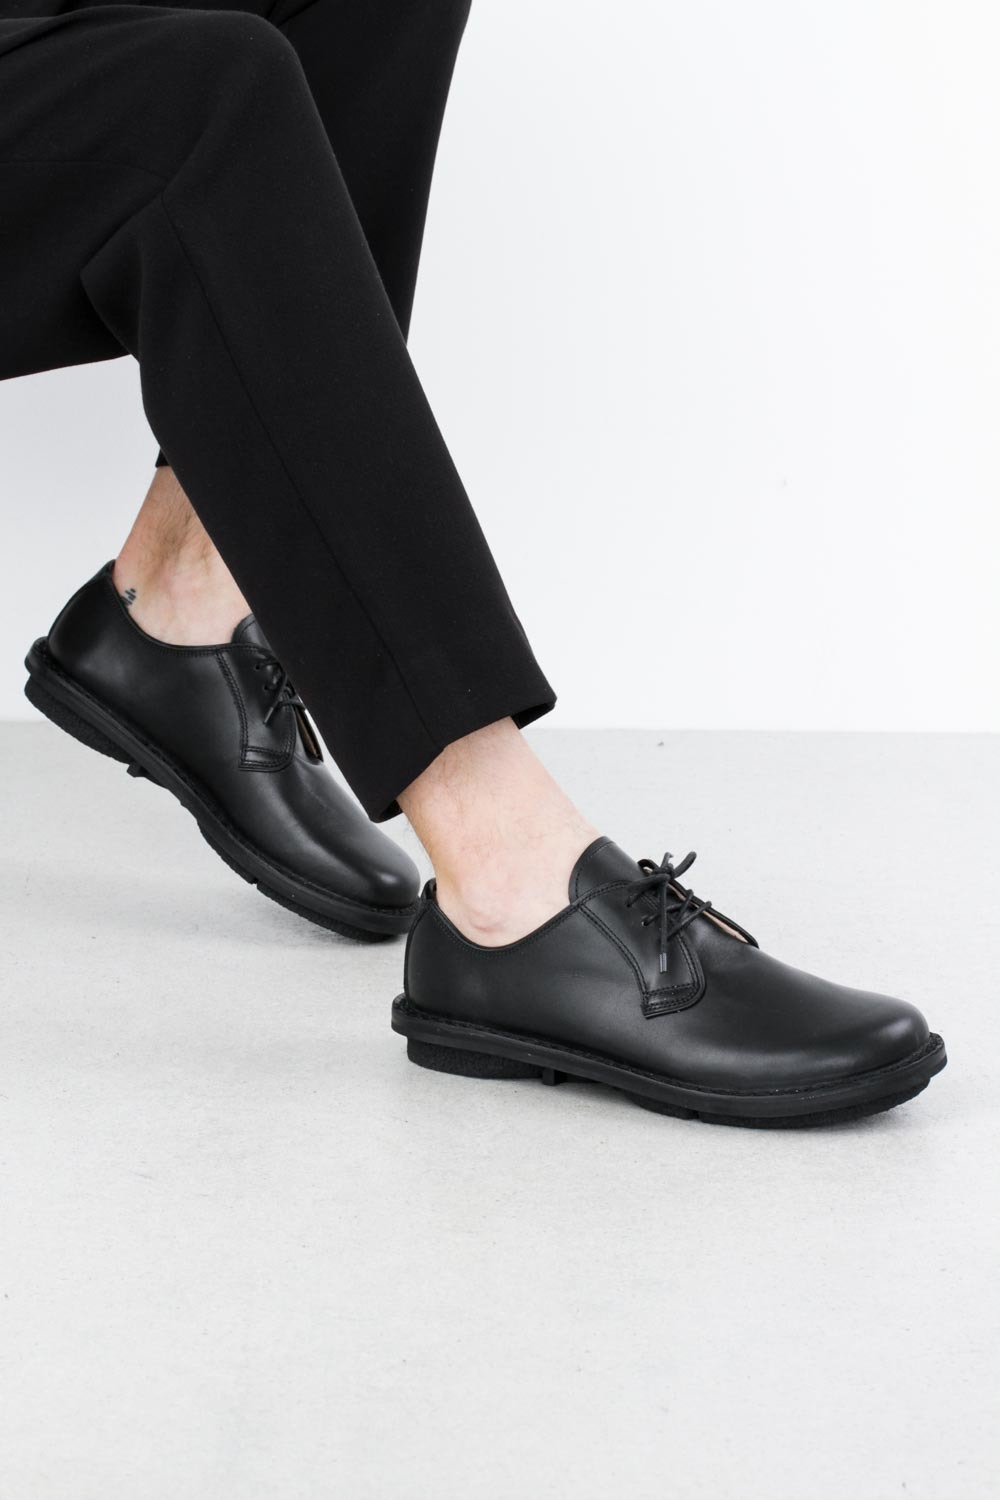 Trippen derby black box vi blk leathershoe1